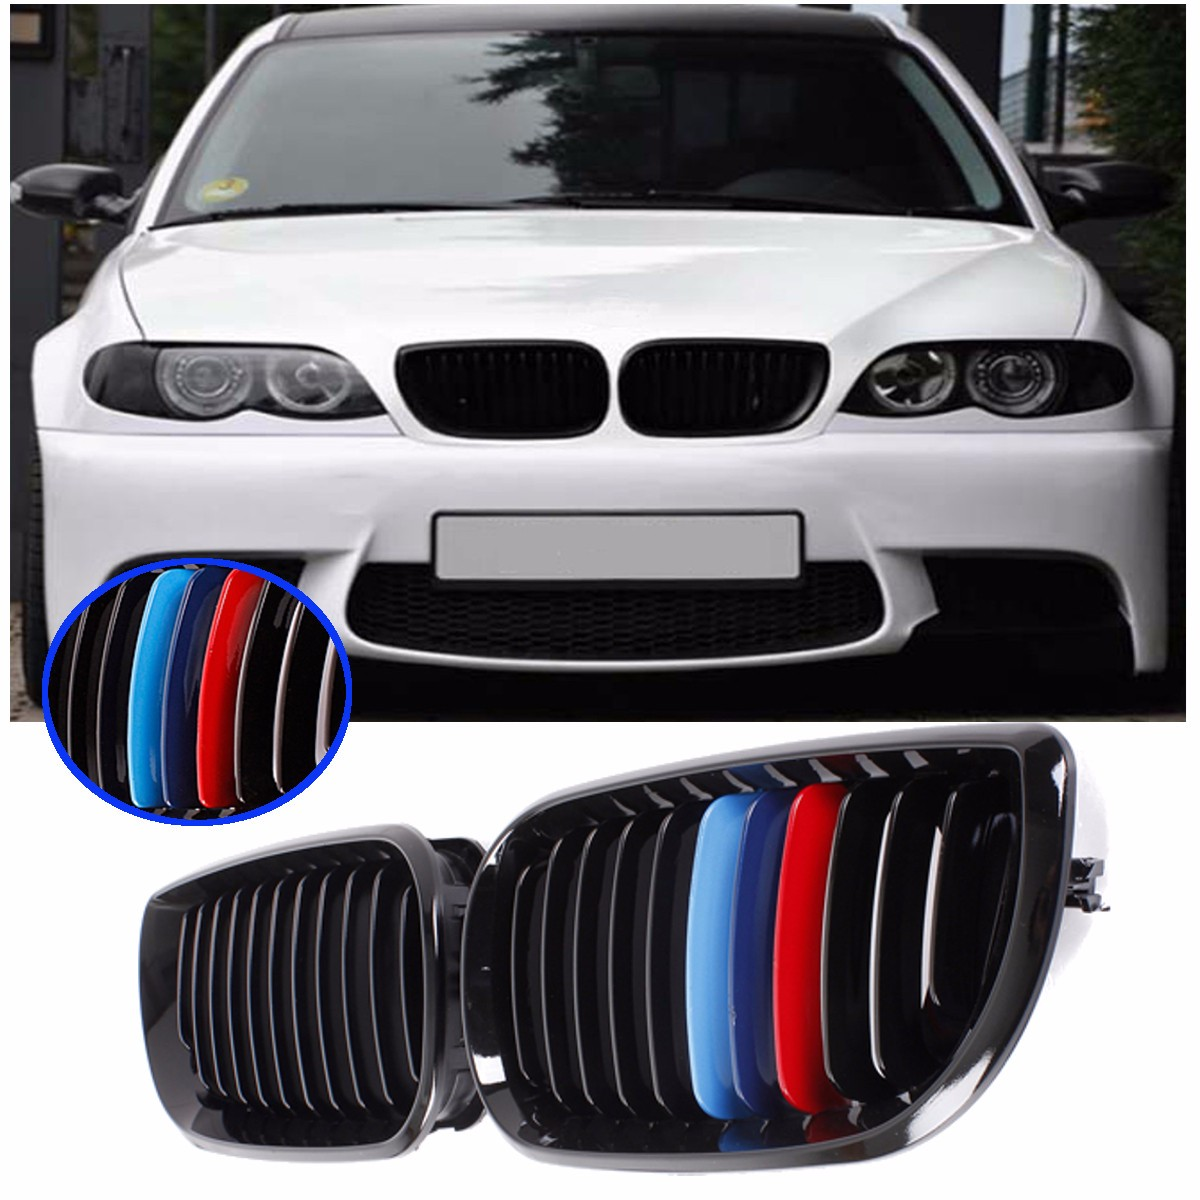 Pair Gloss Black Car Front M-color Kidney Grille Grill For BMW E46 Touring Saloon 4 Doors 3 Series 2002 2003 2004 2005 Facelift pair gloss matt black m color 2 line front kidney grille grill double slat for bmw e90 e91 3 series 2004 2005 2006 2007